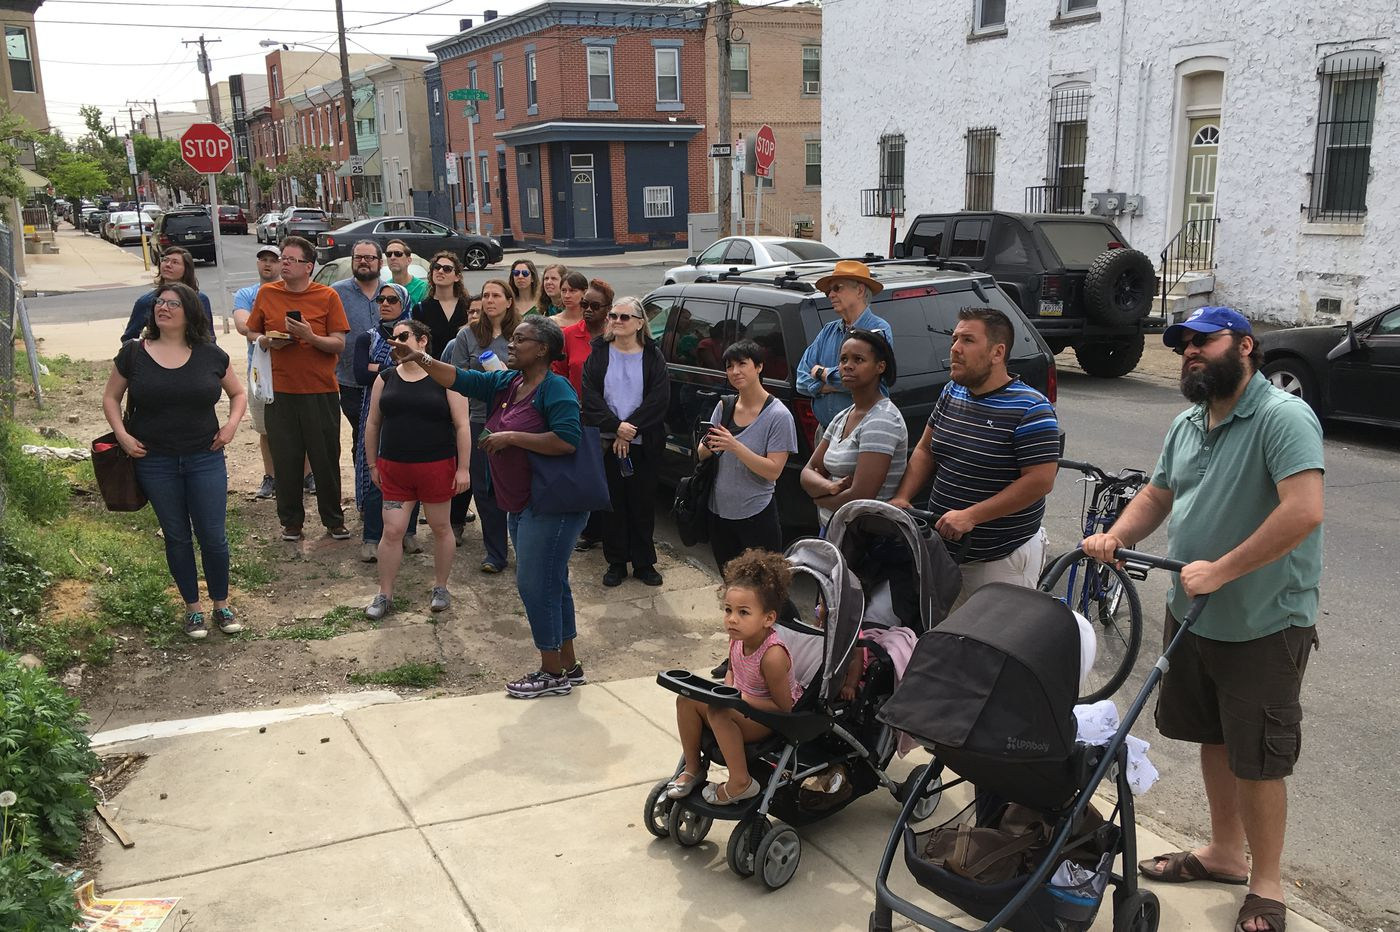 Jane's Walk helps Philadelphians find our place in this city | Opinion